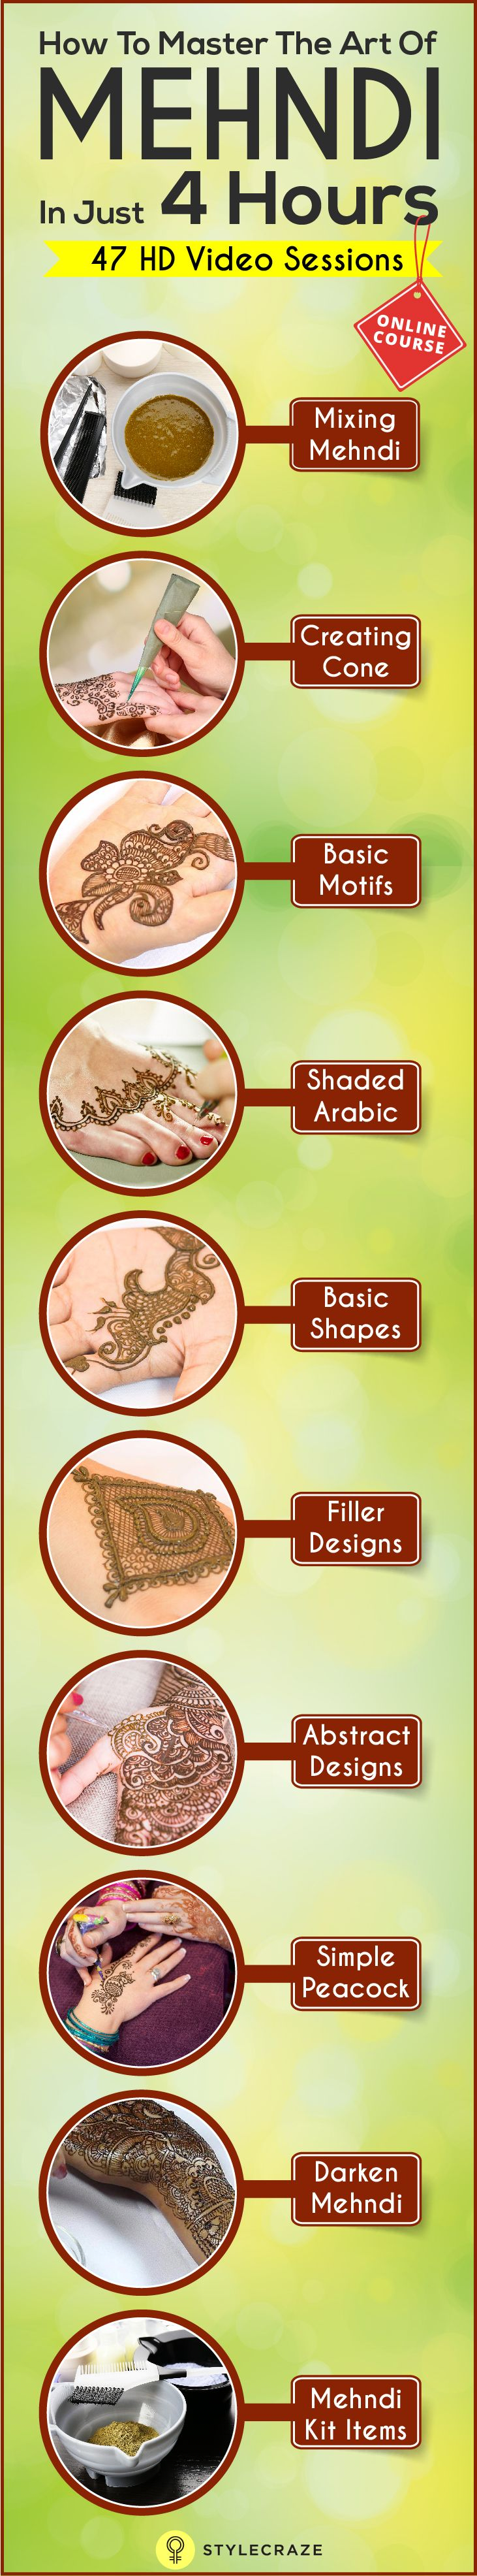 50 intricate henna tattoo designs art and design 50 - Our Mehndi Course Will Definitely Be Of Interest To